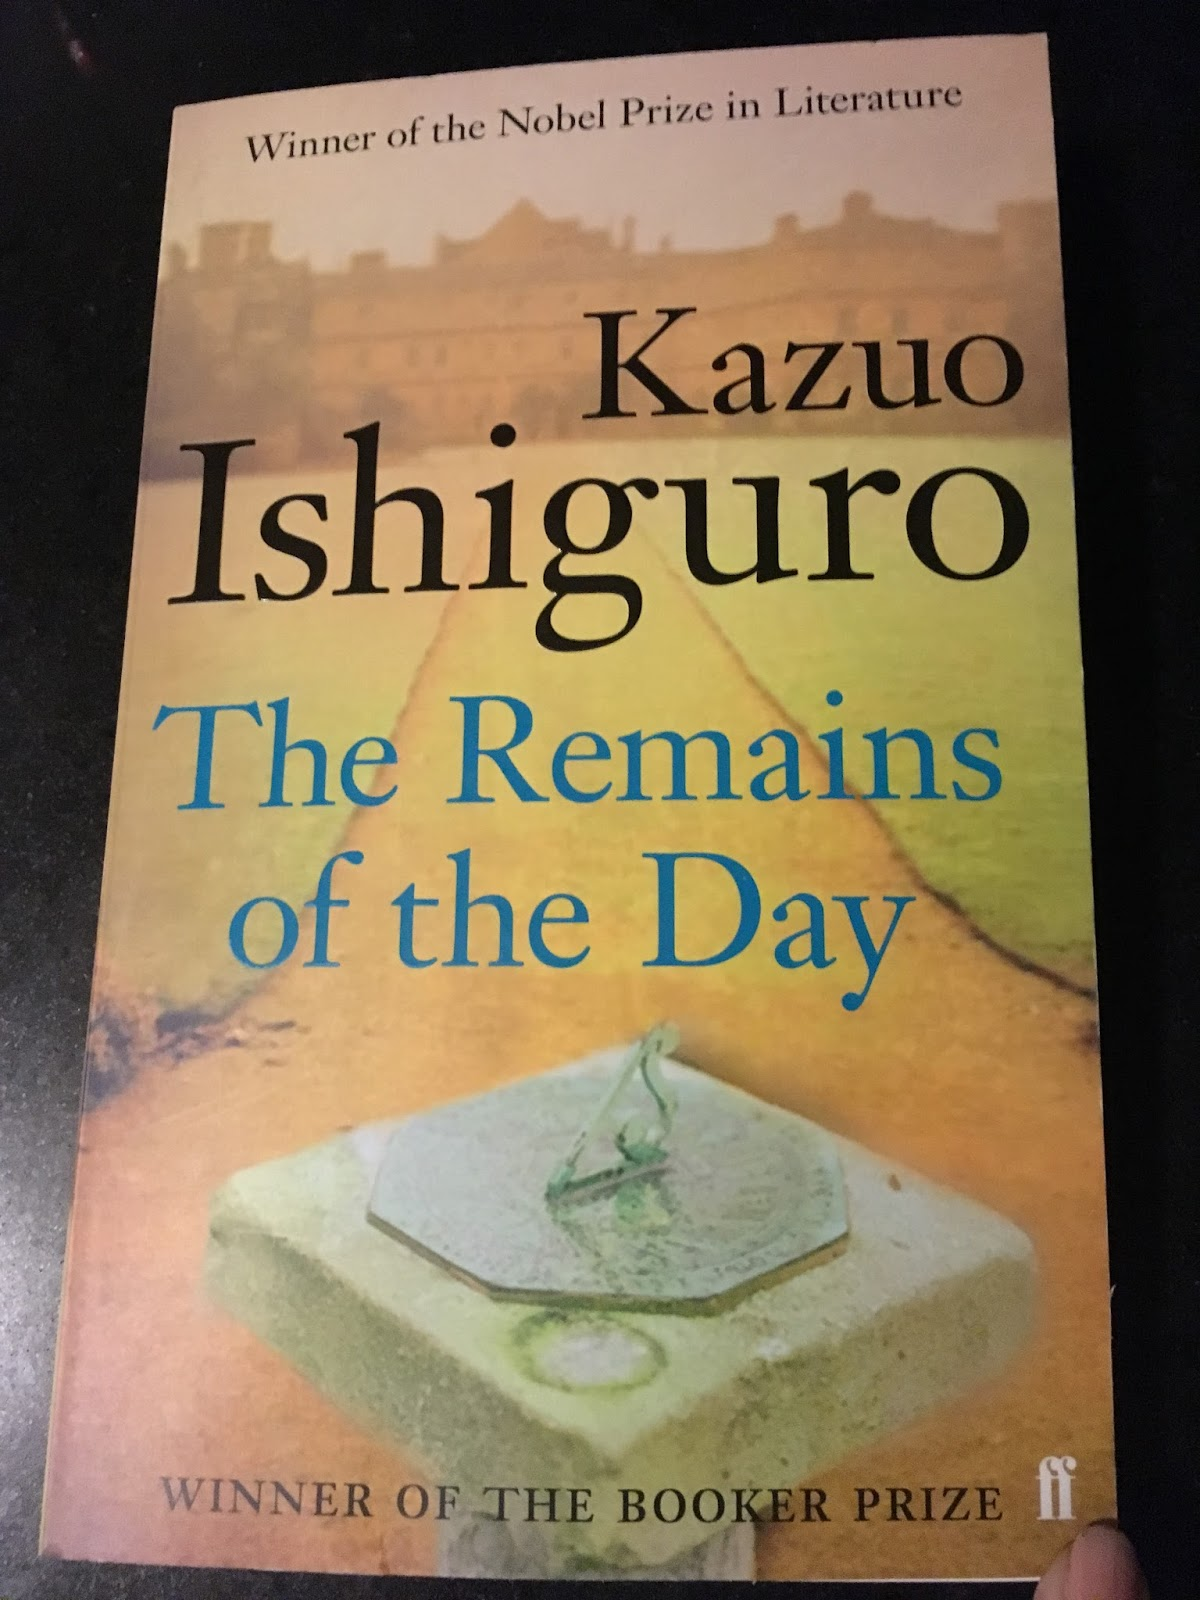 an analysis of the remains of the day by kazuo ishiguro A short summary of kazuo ishiguro's the remains of the day this free synopsis covers all the crucial plot points of the remains of the day summary & analysis.